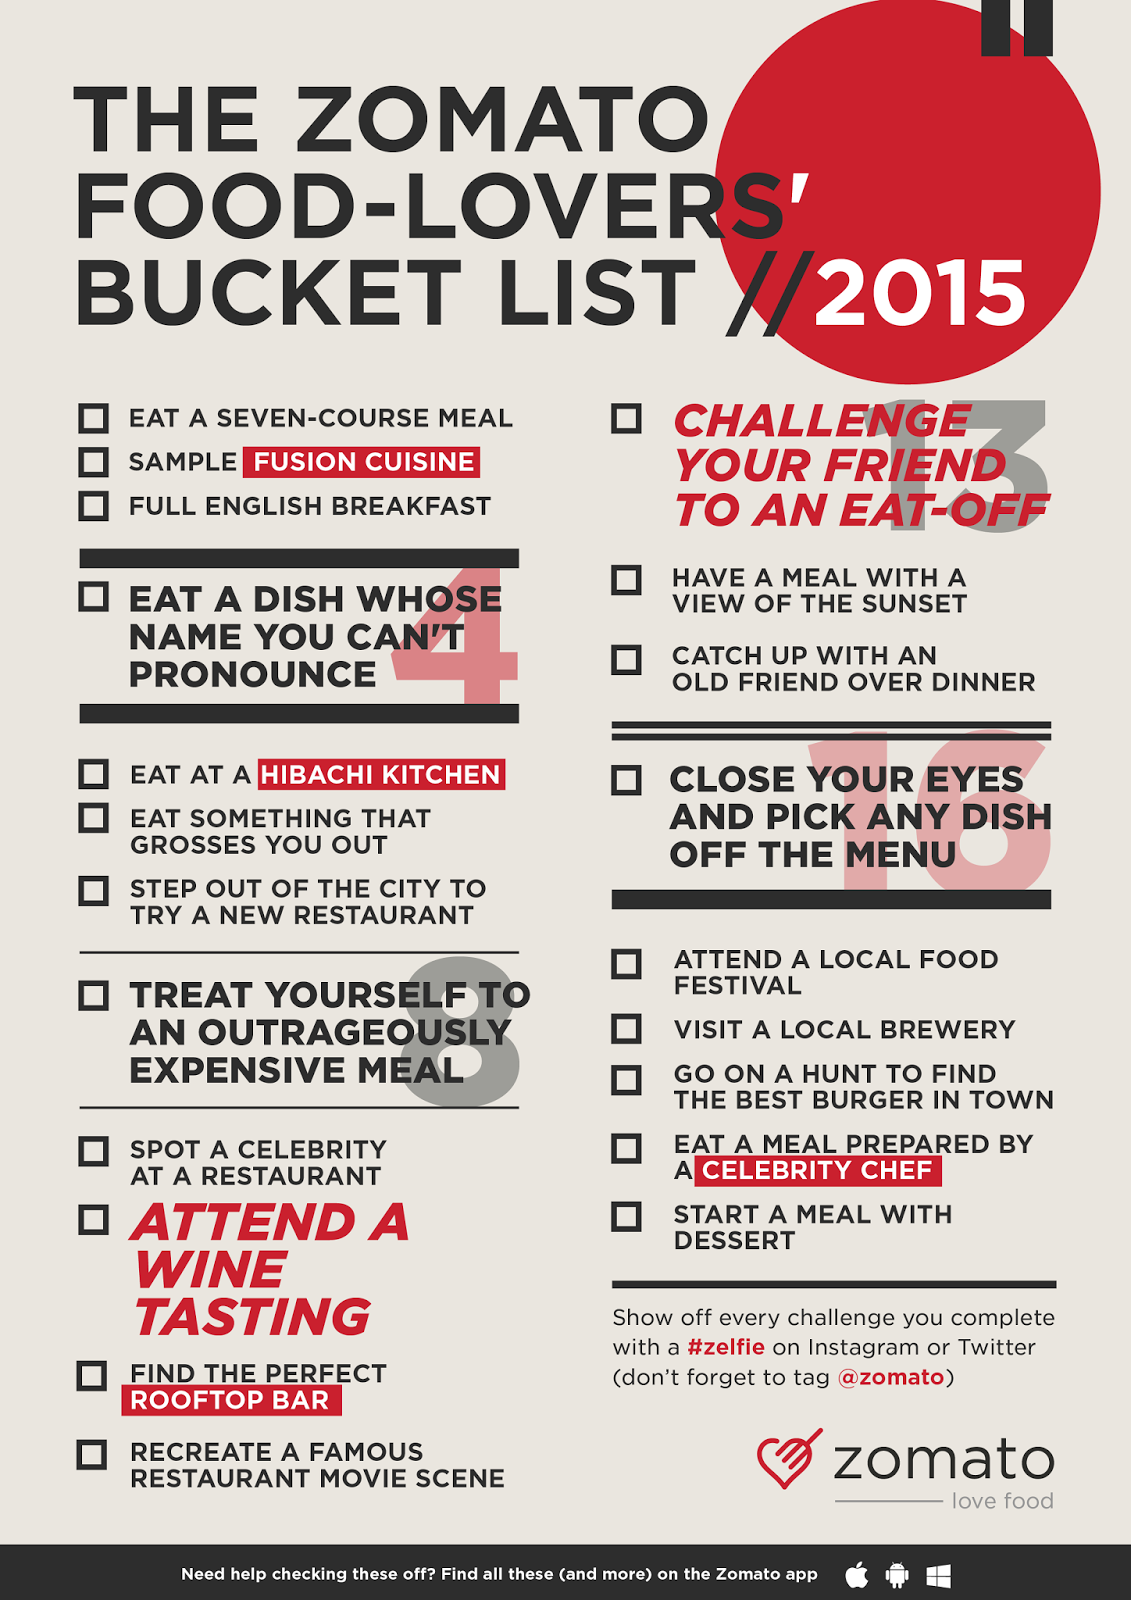 Zomato Foodie Bucket List for 2015